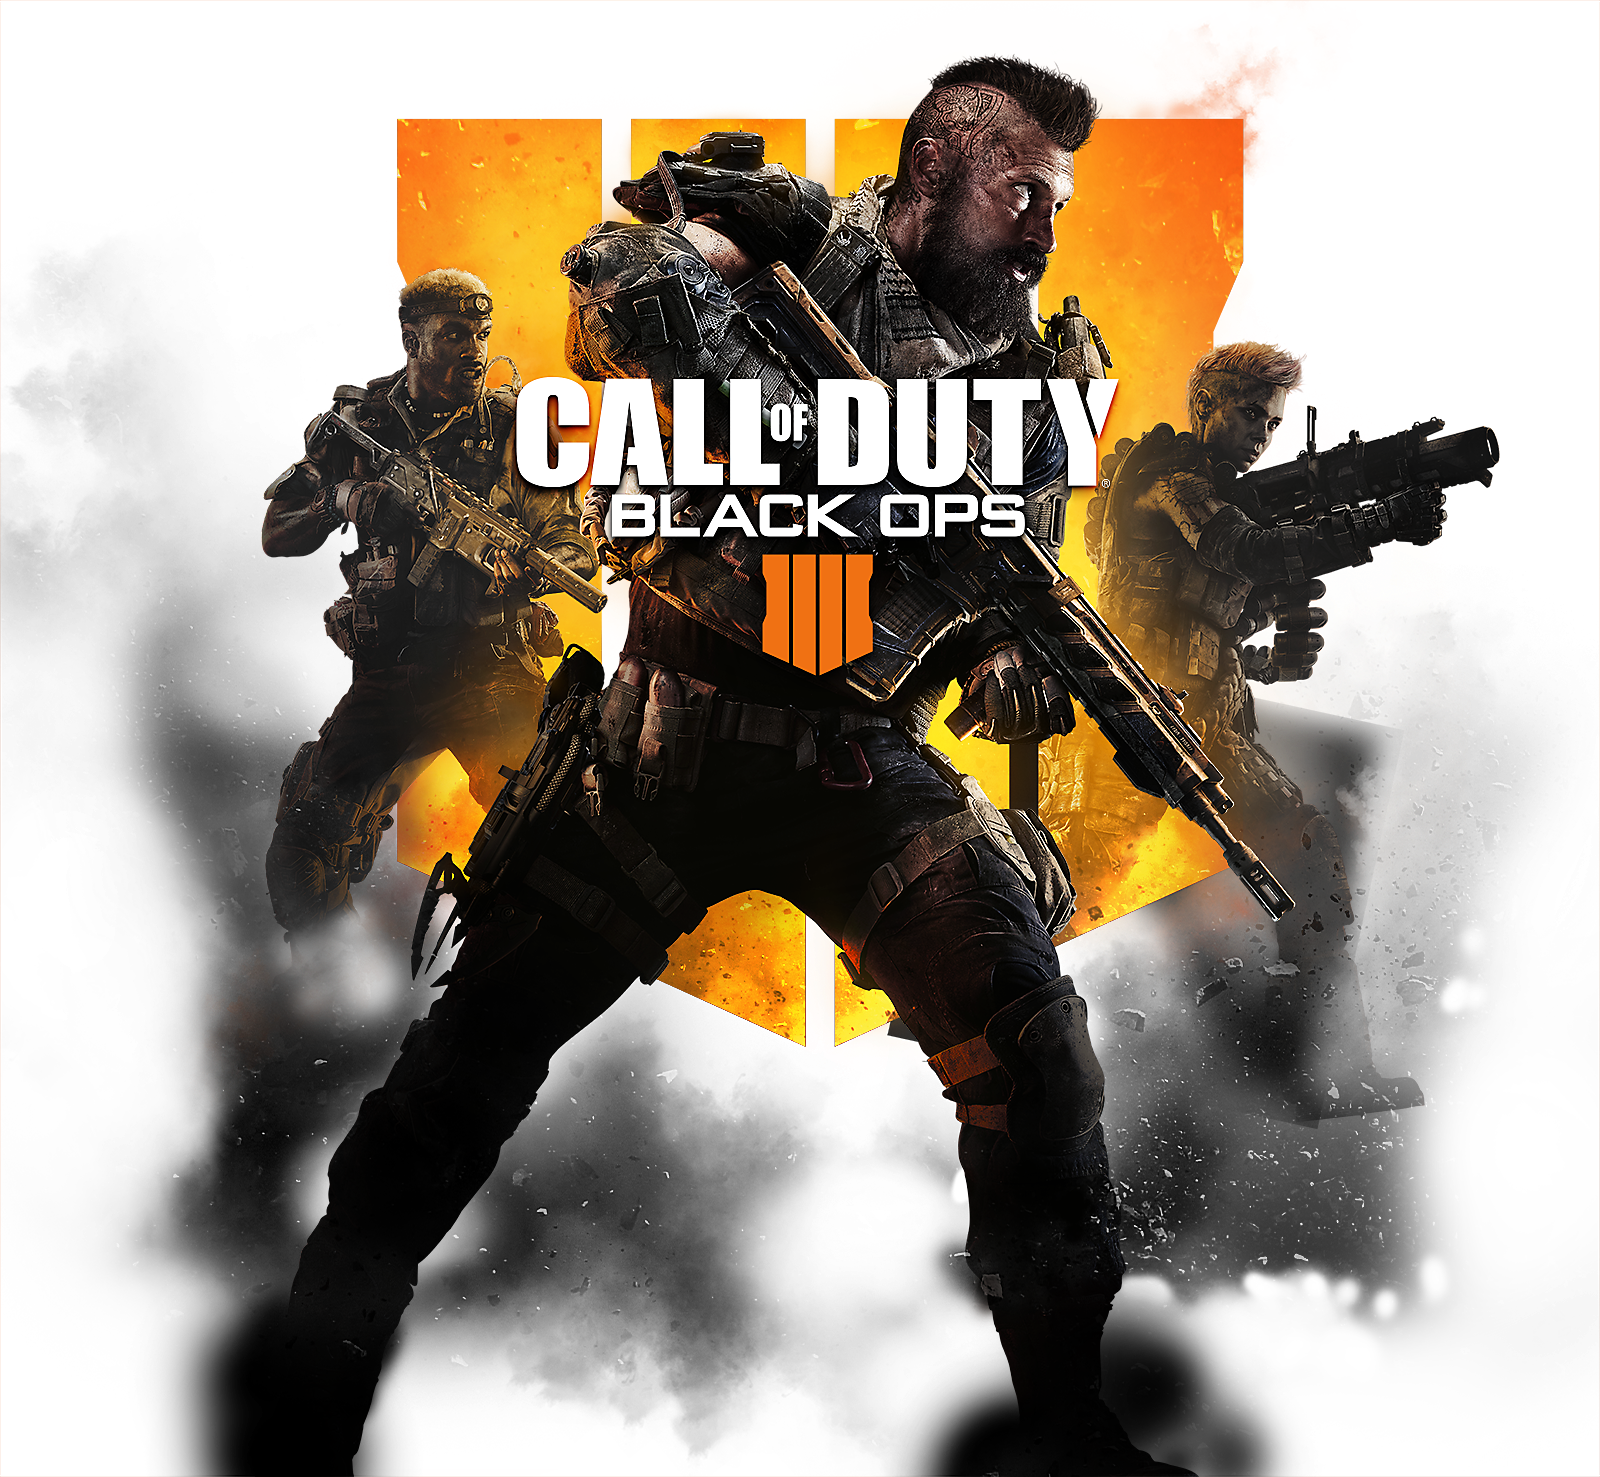 Download Call Of Duty Black Ops 4 Cover Image Png Image For Free